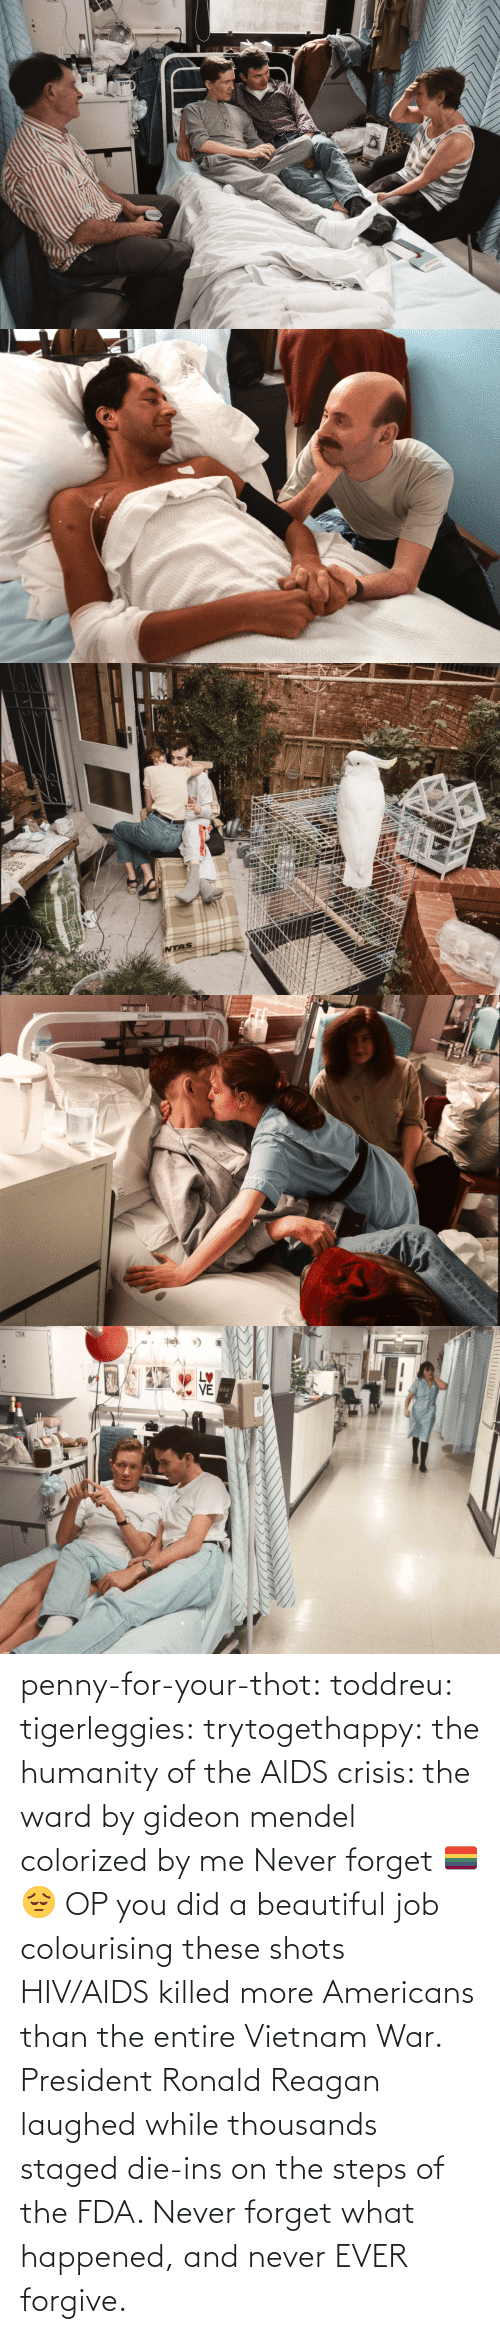 You Did: STVE  yboagt   INTAS   ENesbit Evans  CAN   LETTI penny-for-your-thot: toddreu:  tigerleggies:  trytogethappy:  the humanity of the AIDS crisis: the ward by gideon mendel colorized by me   Never forget 🏳️‍🌈😔   OP you did a beautiful job colourising these shots   HIV/AIDS killed more Americans than the entire Vietnam War. President Ronald Reagan laughed while thousands staged die-ins on the steps of the FDA. Never forget what happened, and never EVER forgive.